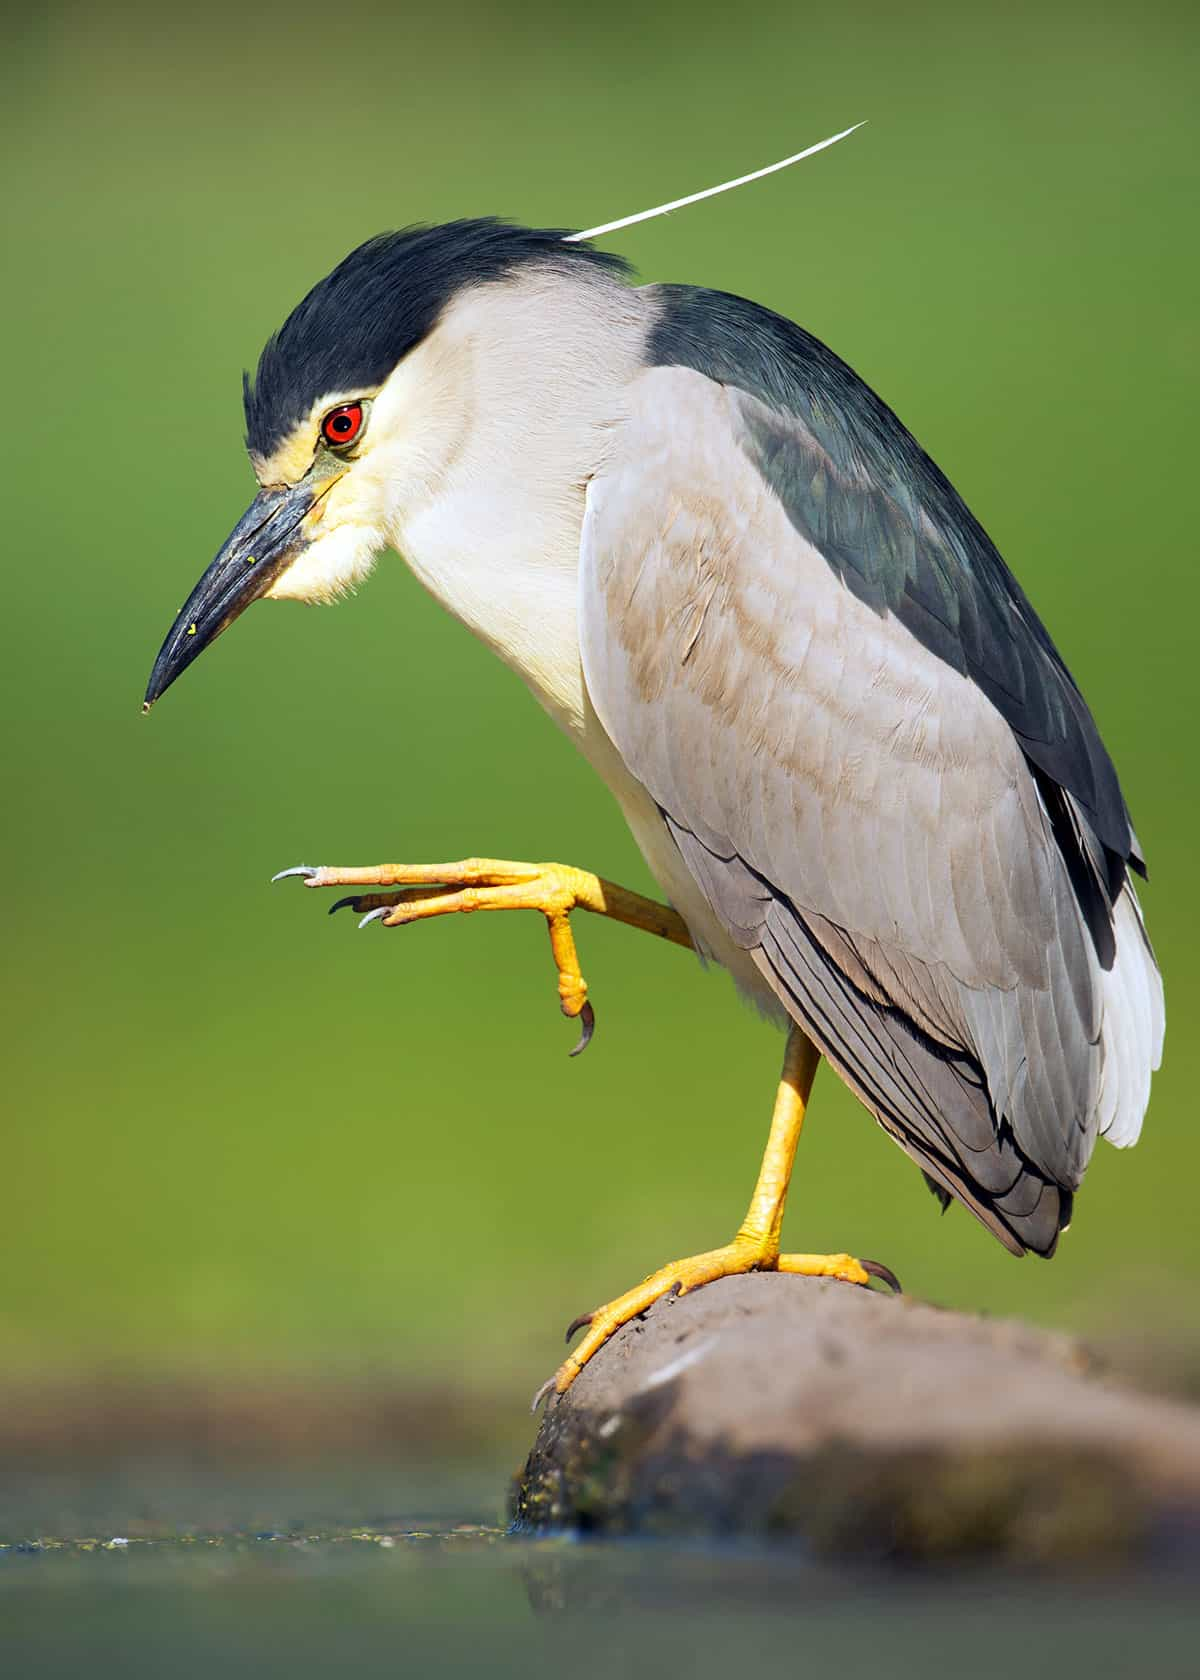 Black crowned night heron Nycticorax nycticorax